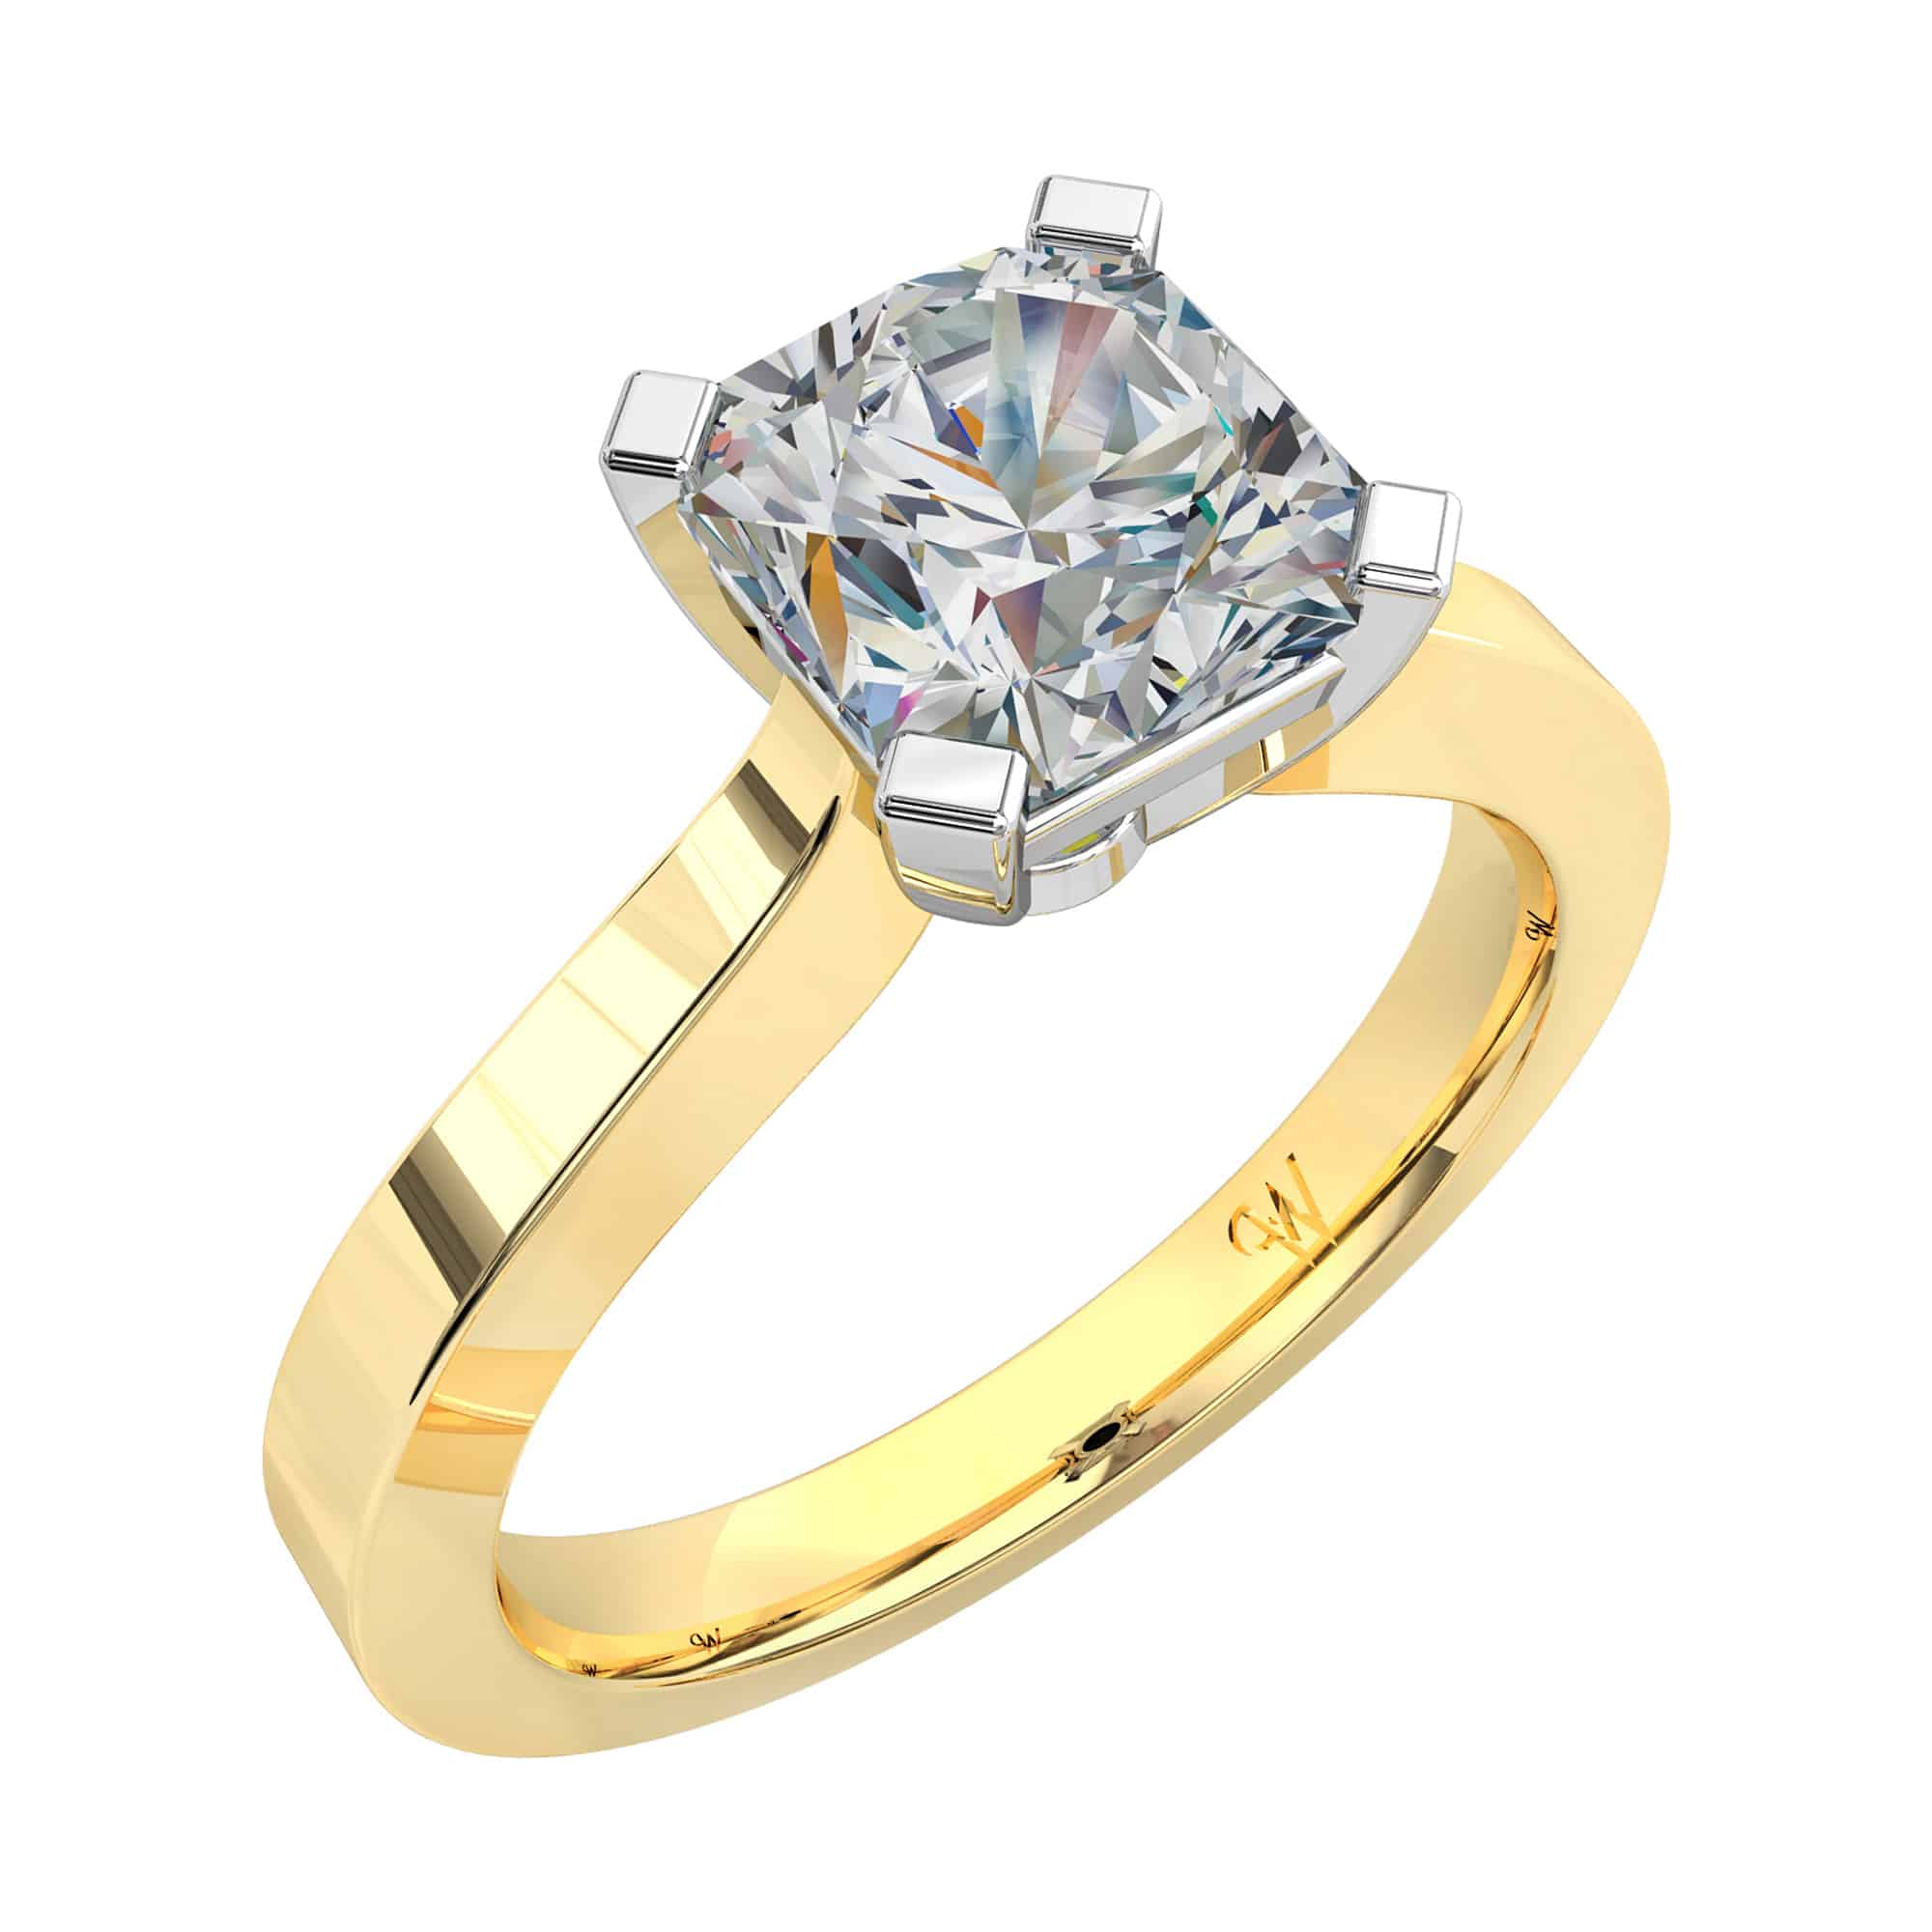 il champagne fullxfull natural asscher brown eidelprecious cut jewellery listing by engagement diamond rings ring light